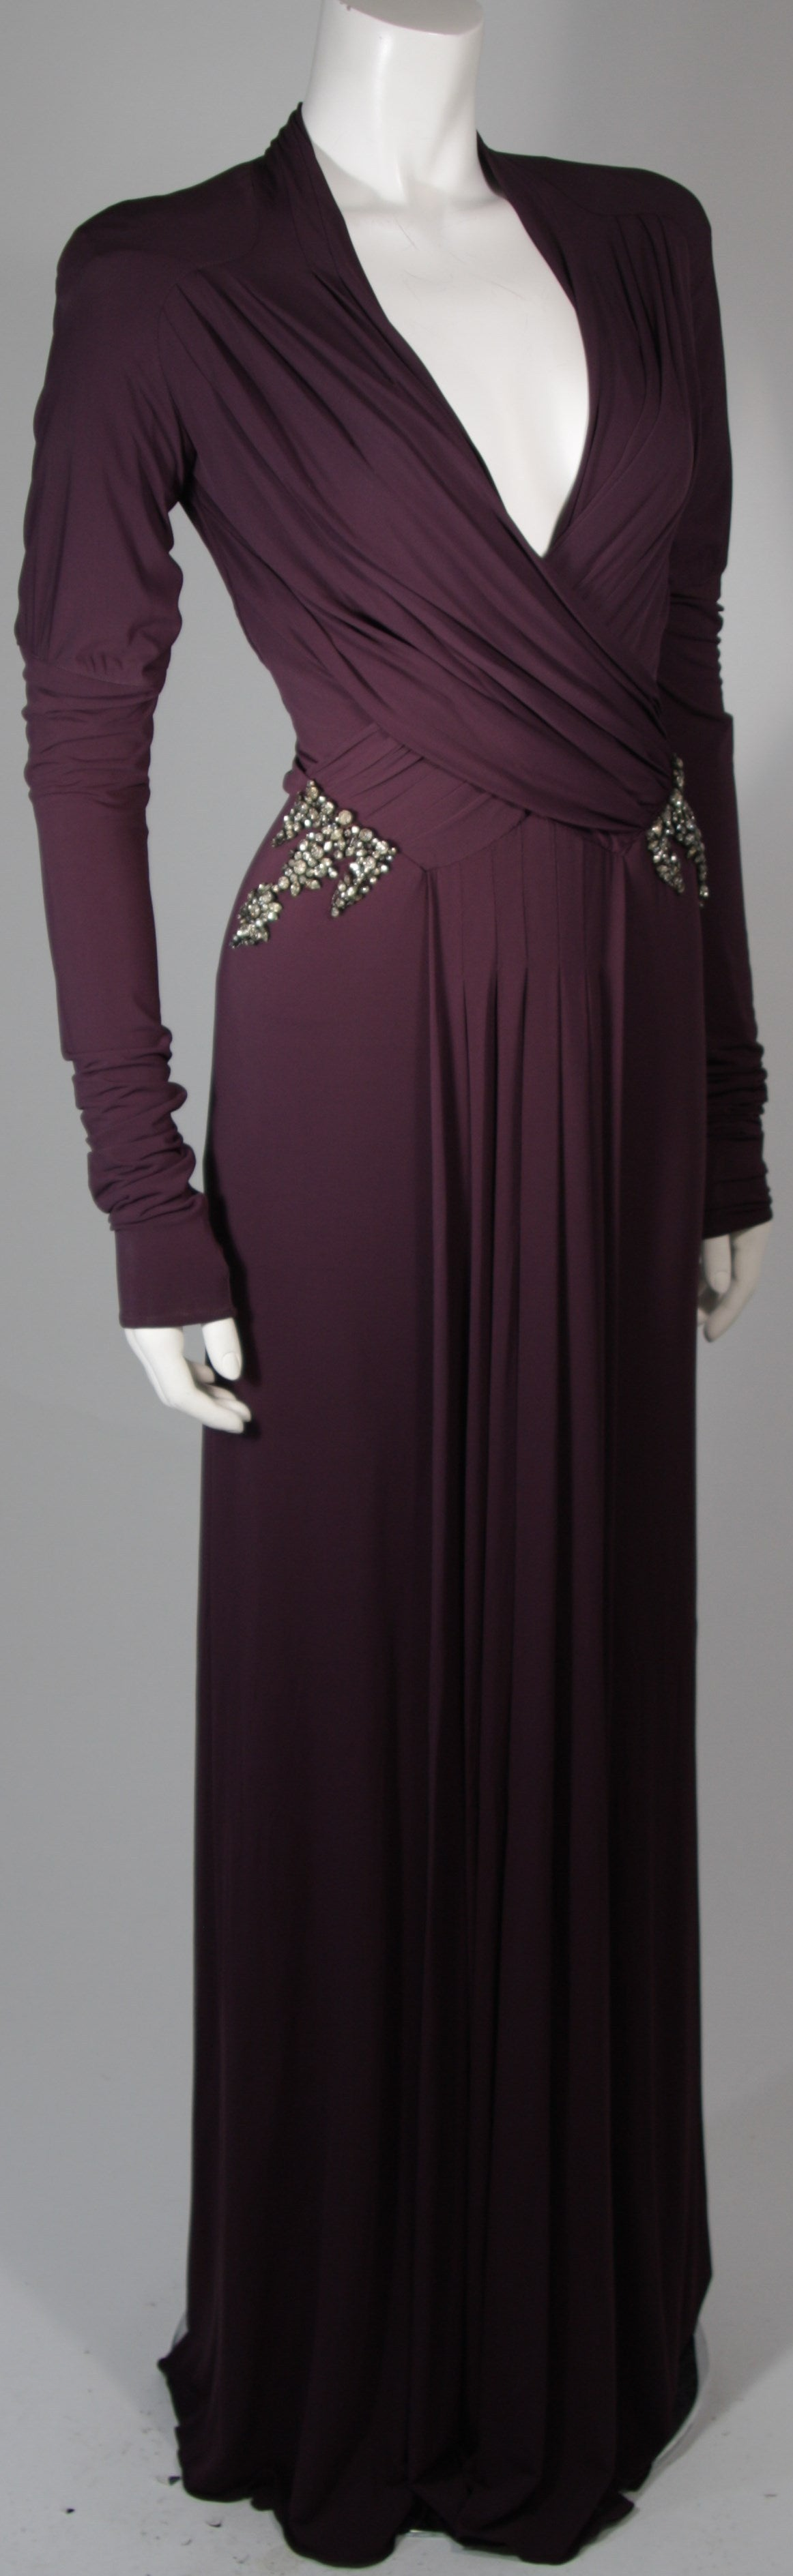 Roberto Cavalli Aubergine Long Sleeve Jersey Gown with Embellishments Size 40 4